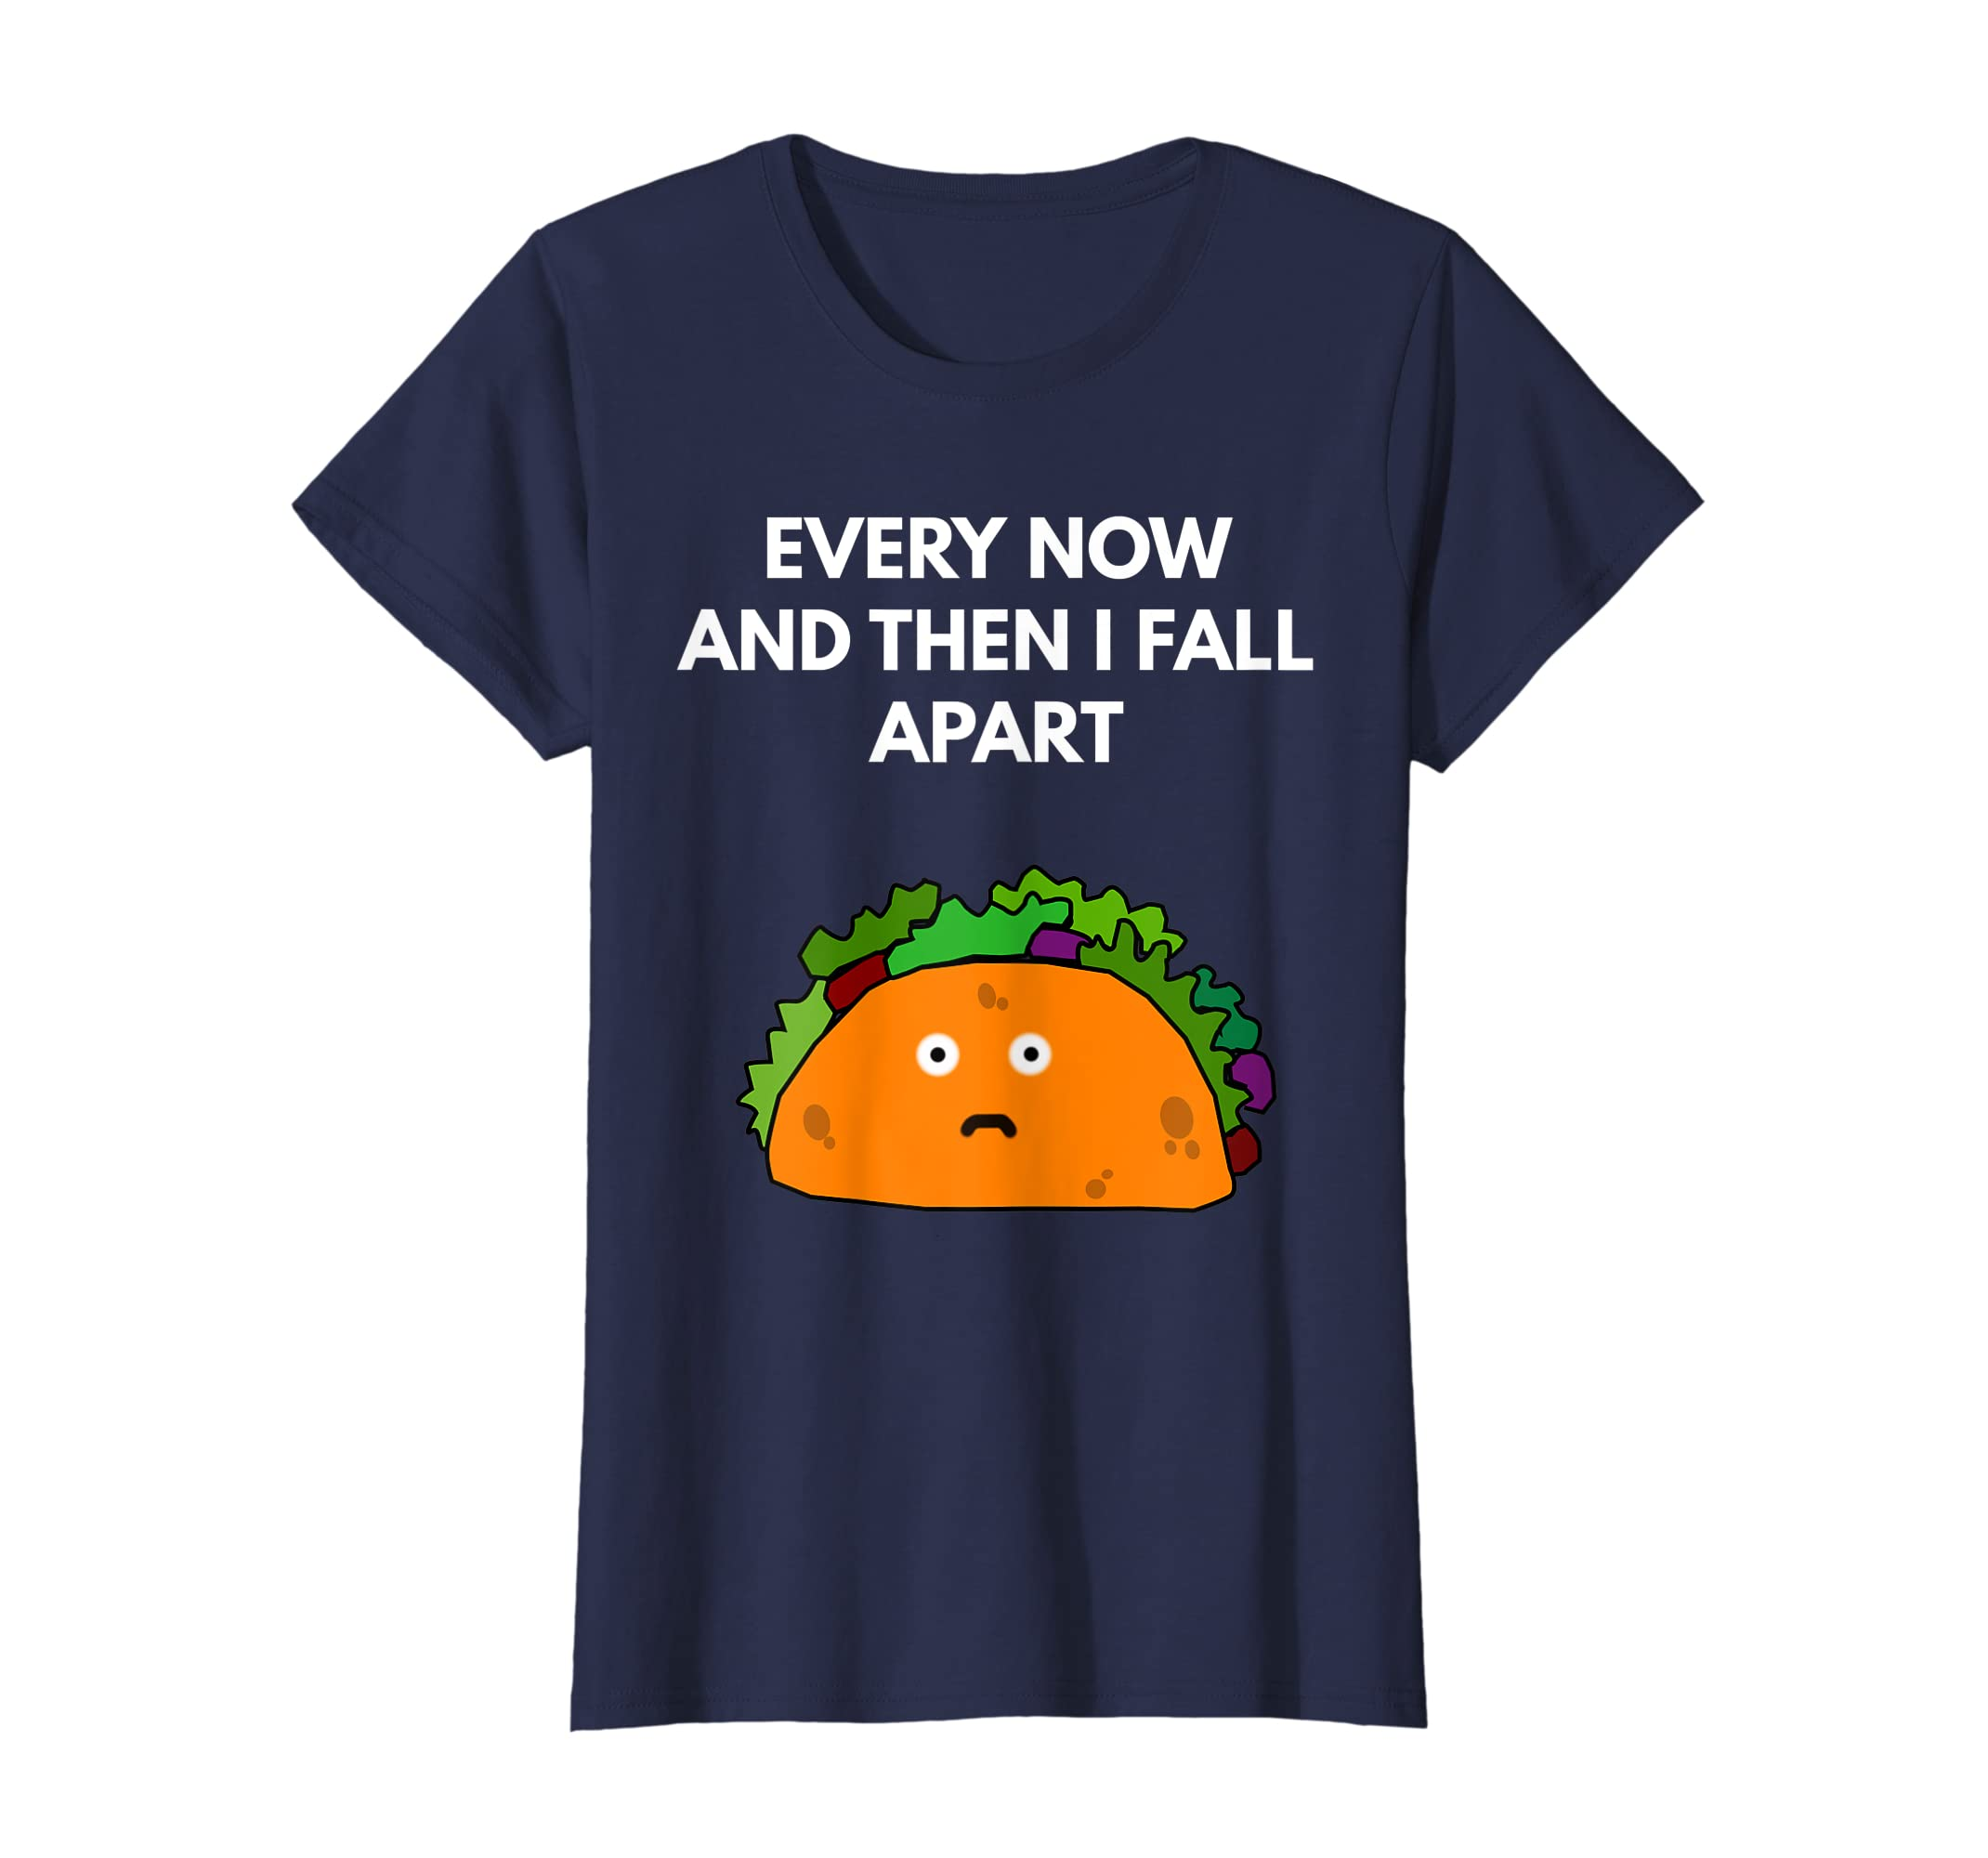 a6435a2d5 Amazon.com: Every Now And Then I Fall Apart taco shirt - Funny Taco Pun:  Clothing